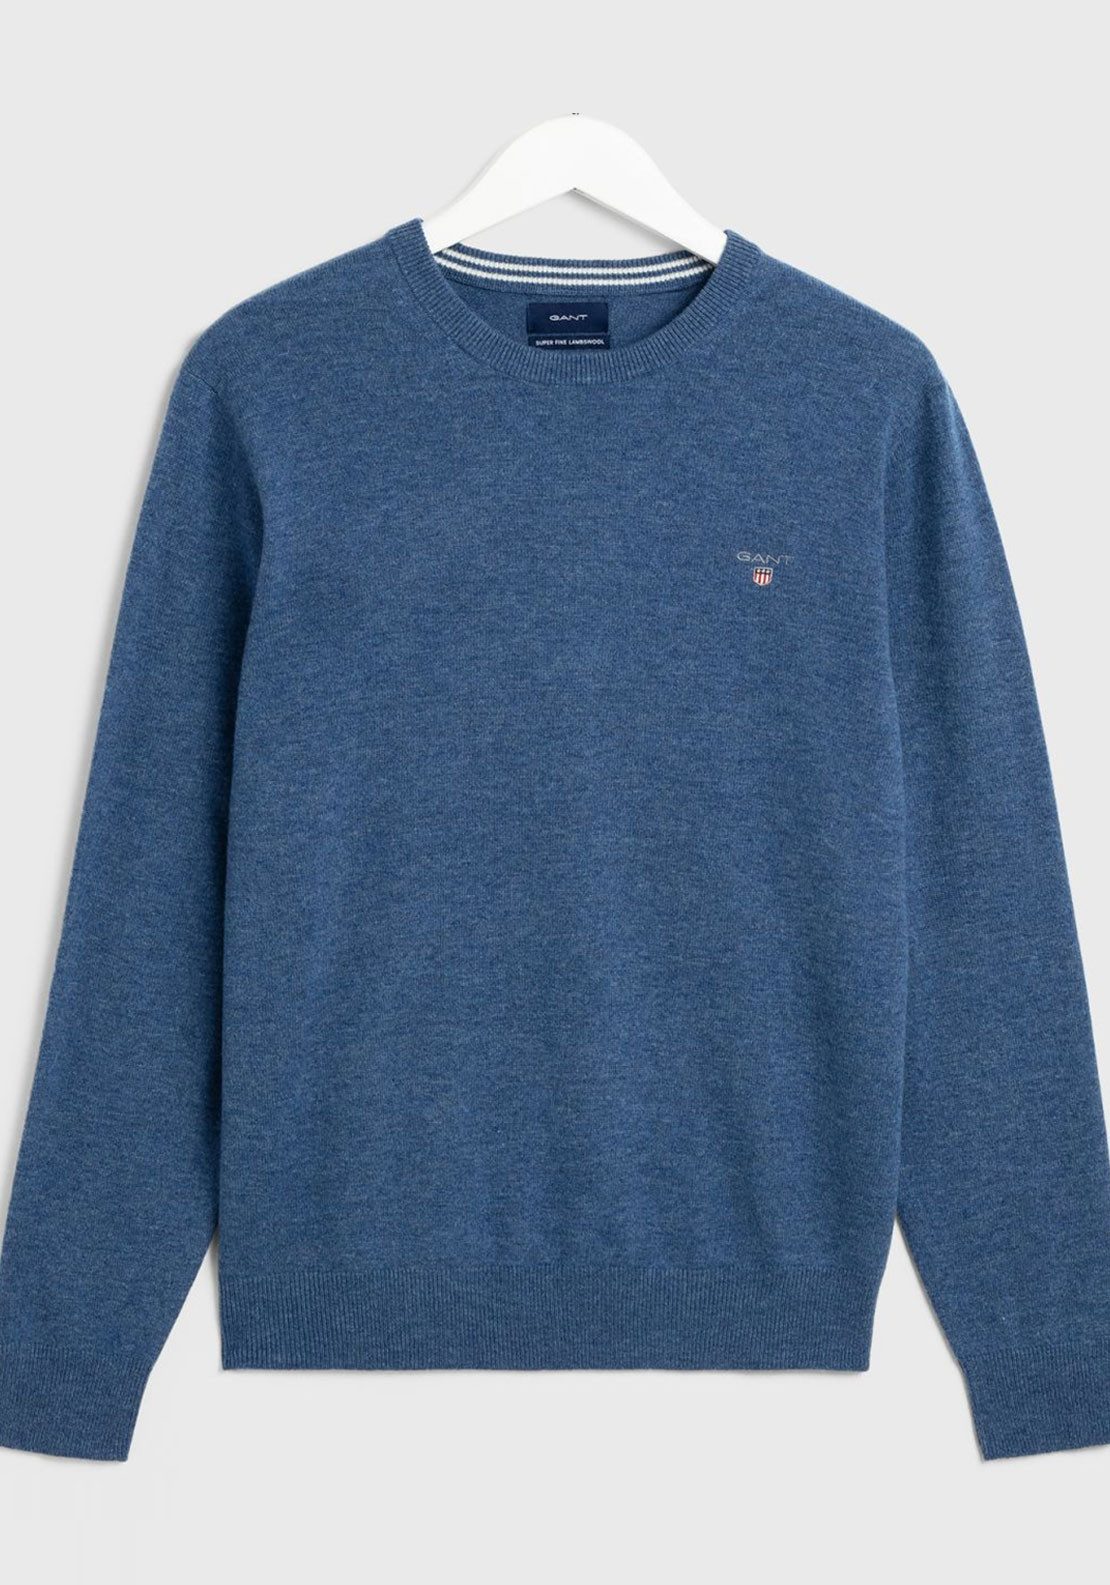 select for clearance select for authentic new appearance Gant Superfine Lambswool Crew Neck Sweater, Stone Blue